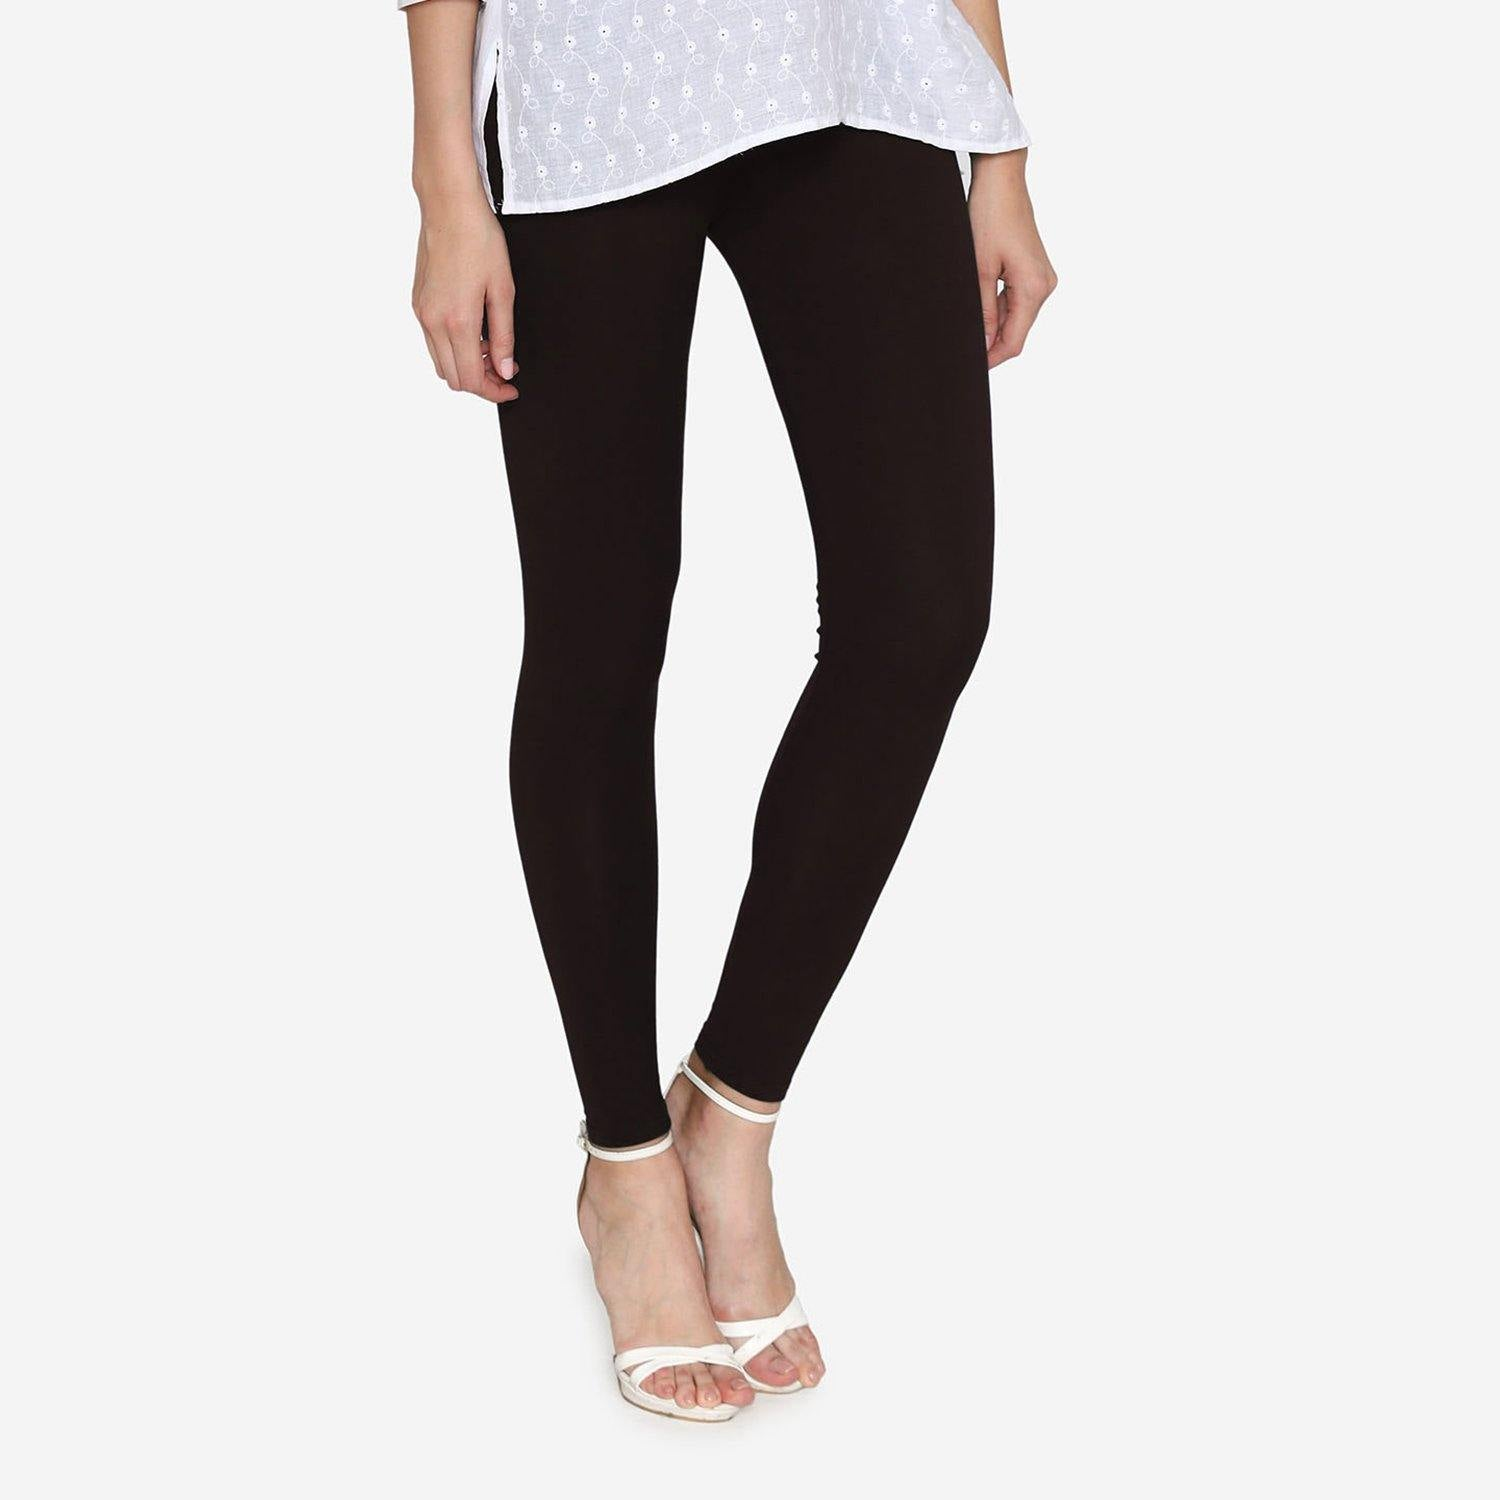 Vami Women's Cotton Stretchable Ankle Leggings - Black